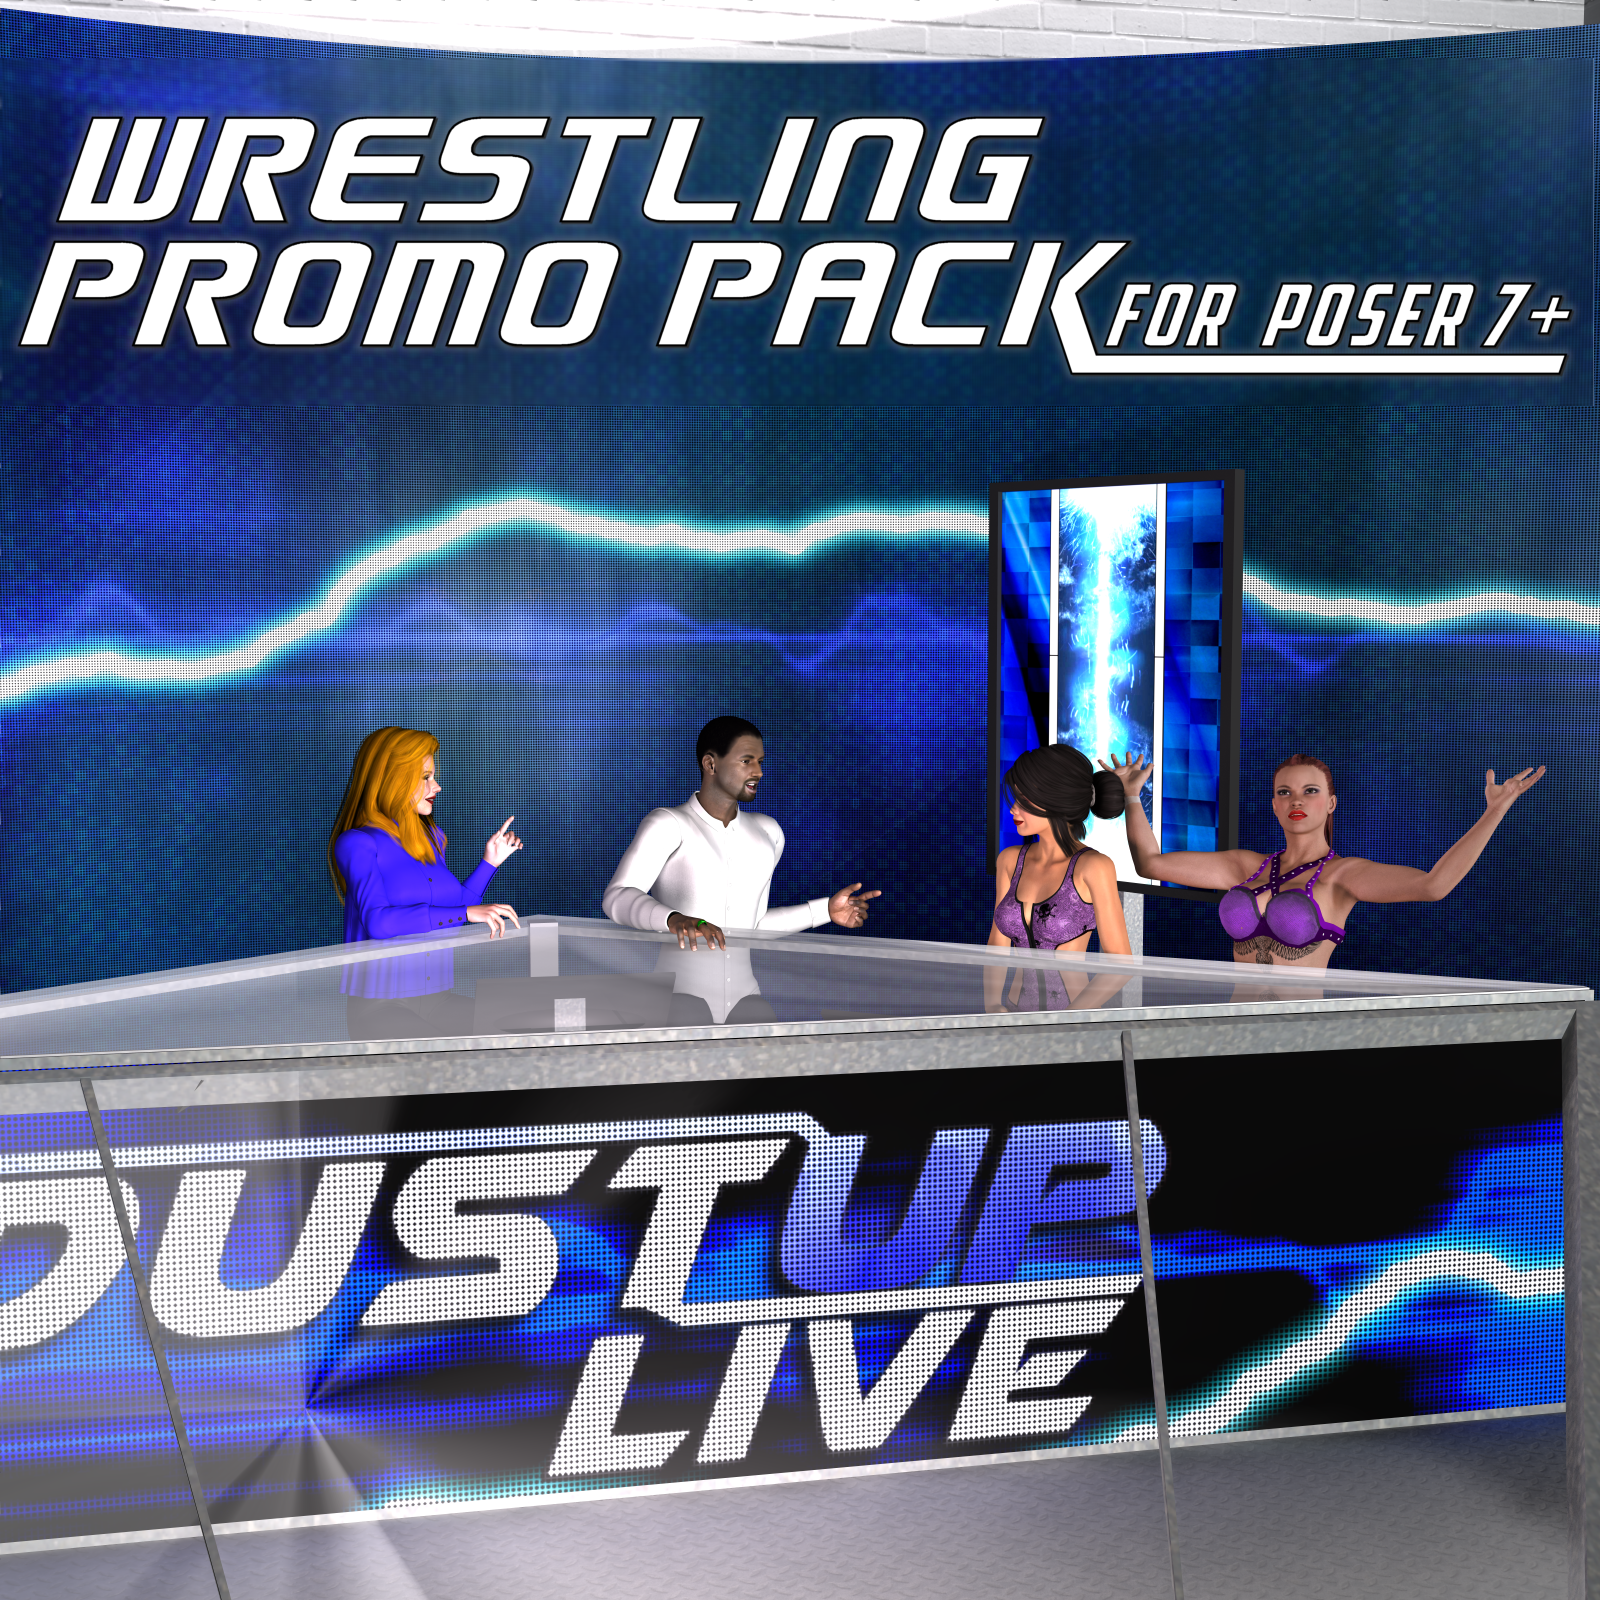 Pro Wrestling Promo Pack for Poser 7+